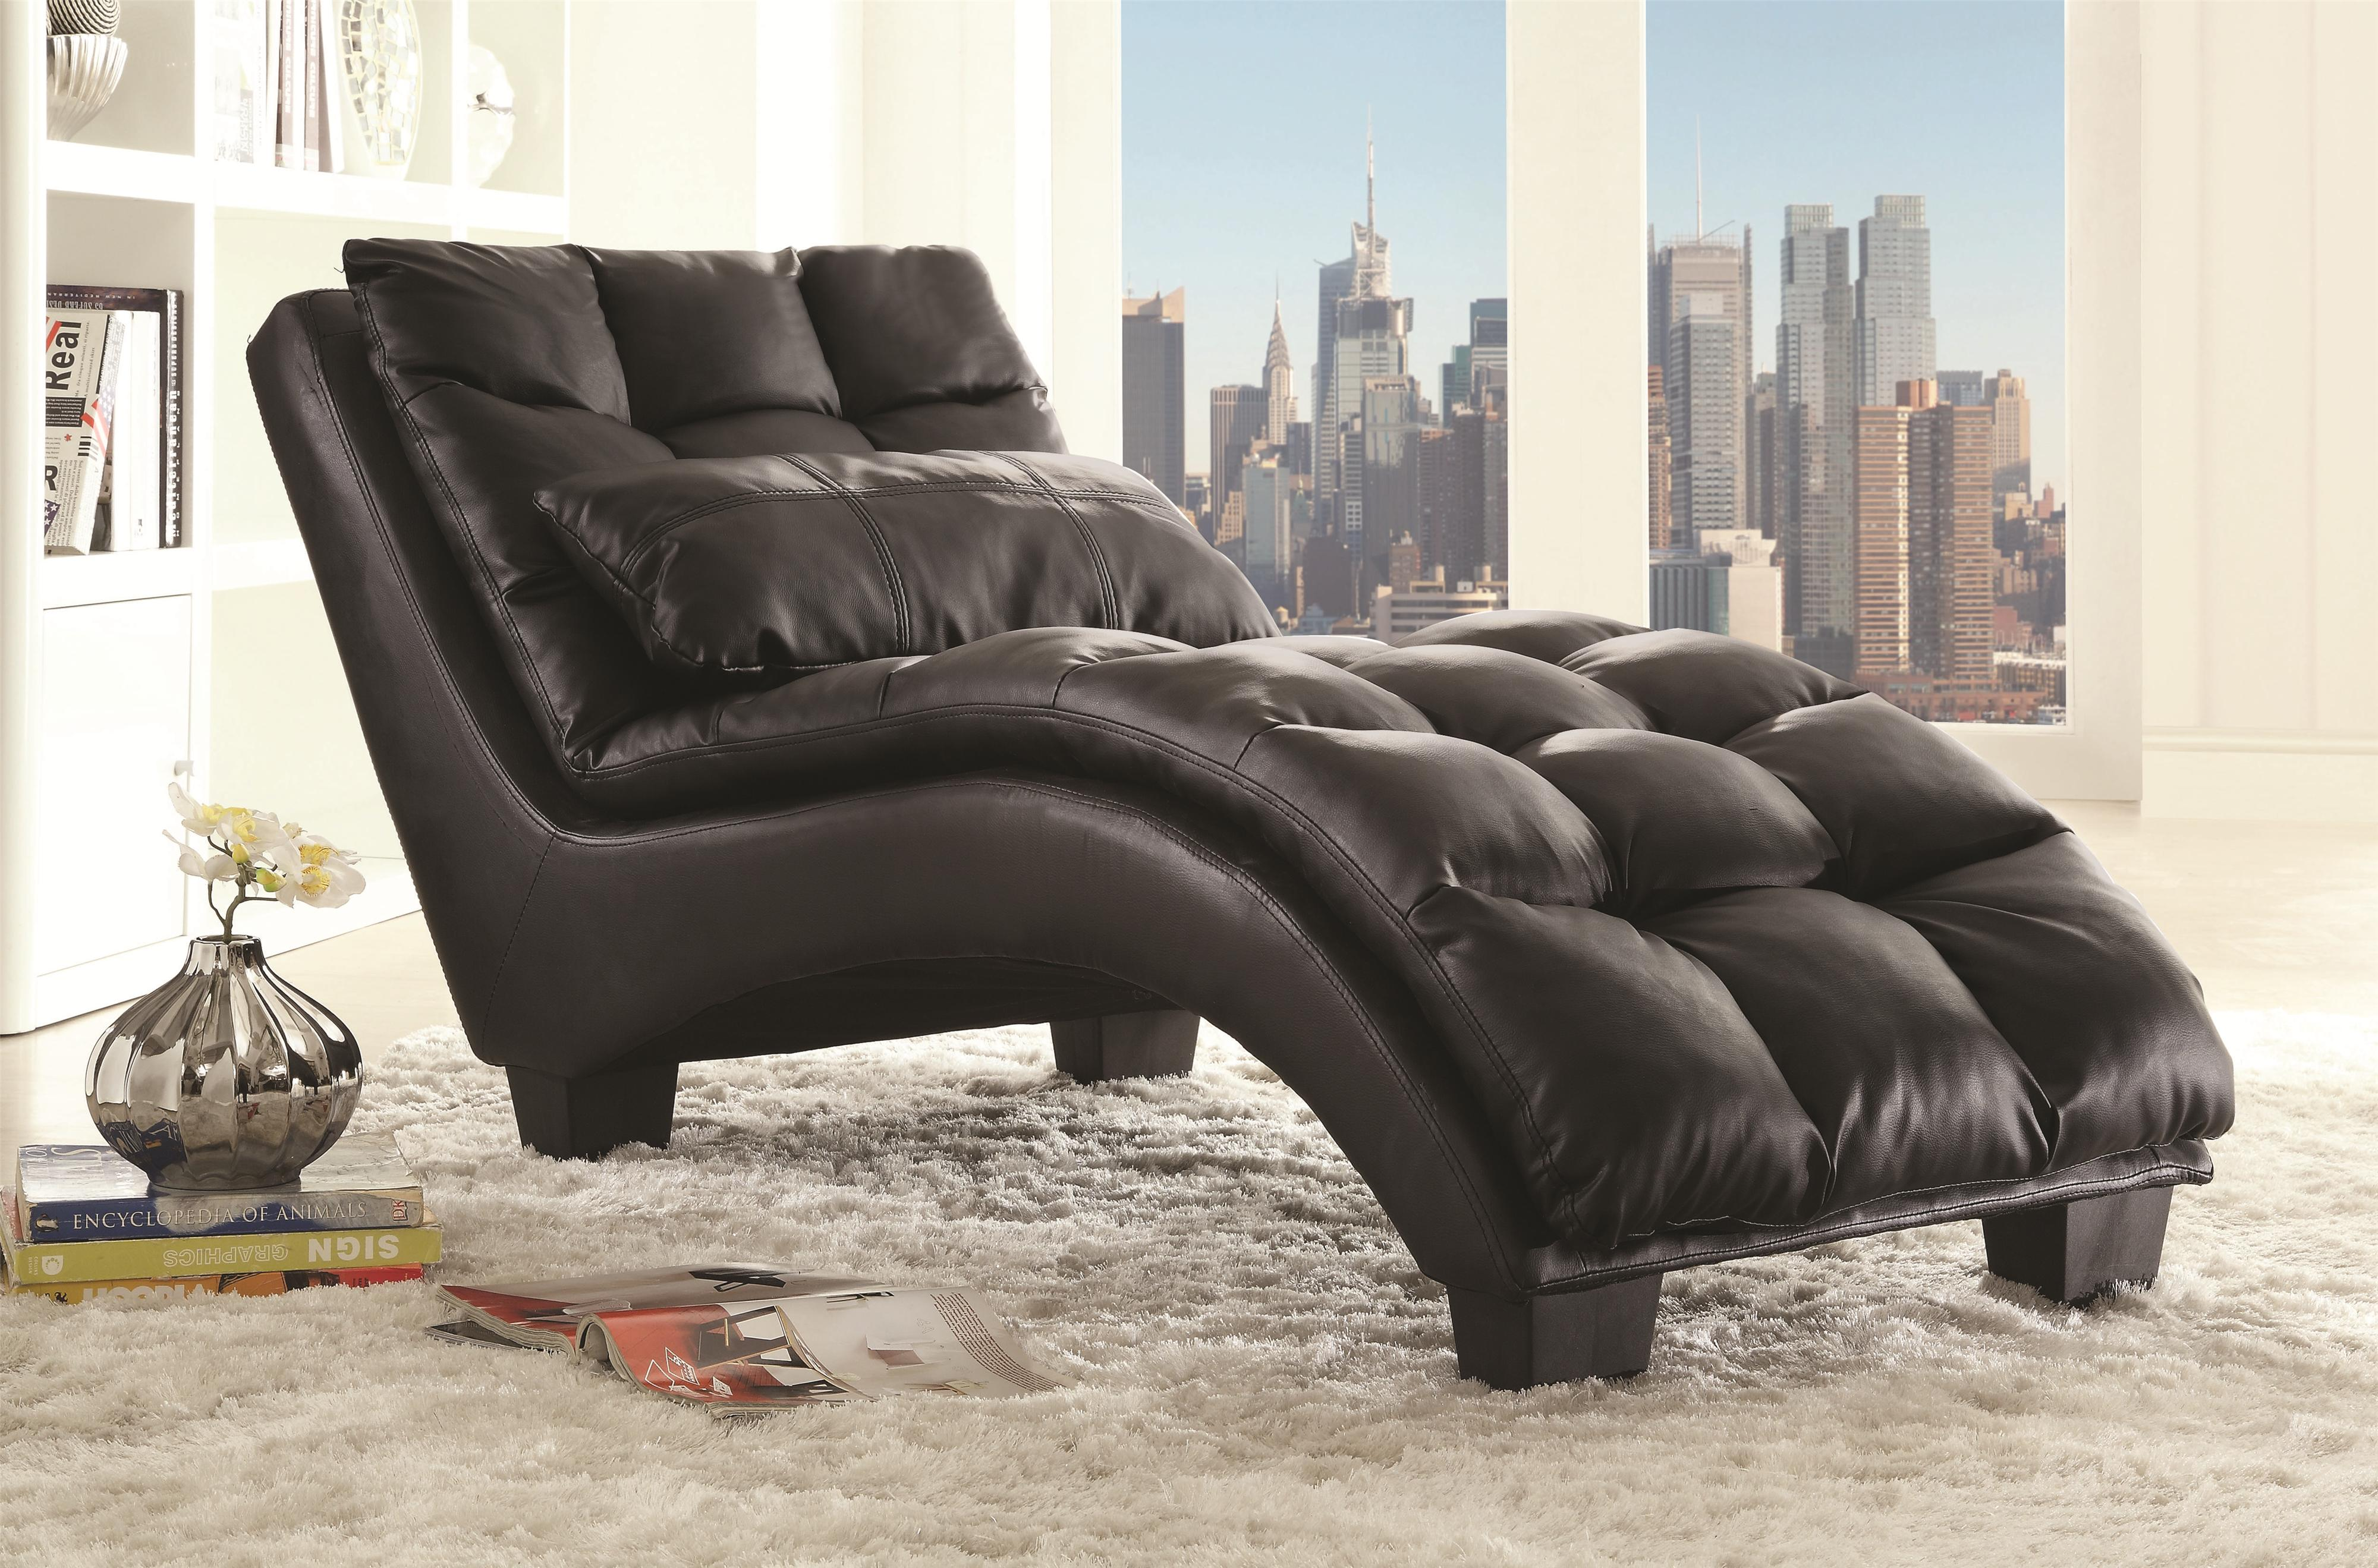 Light European retro style high quality healthy sponge soft flannel with armrest living room chaise lounge